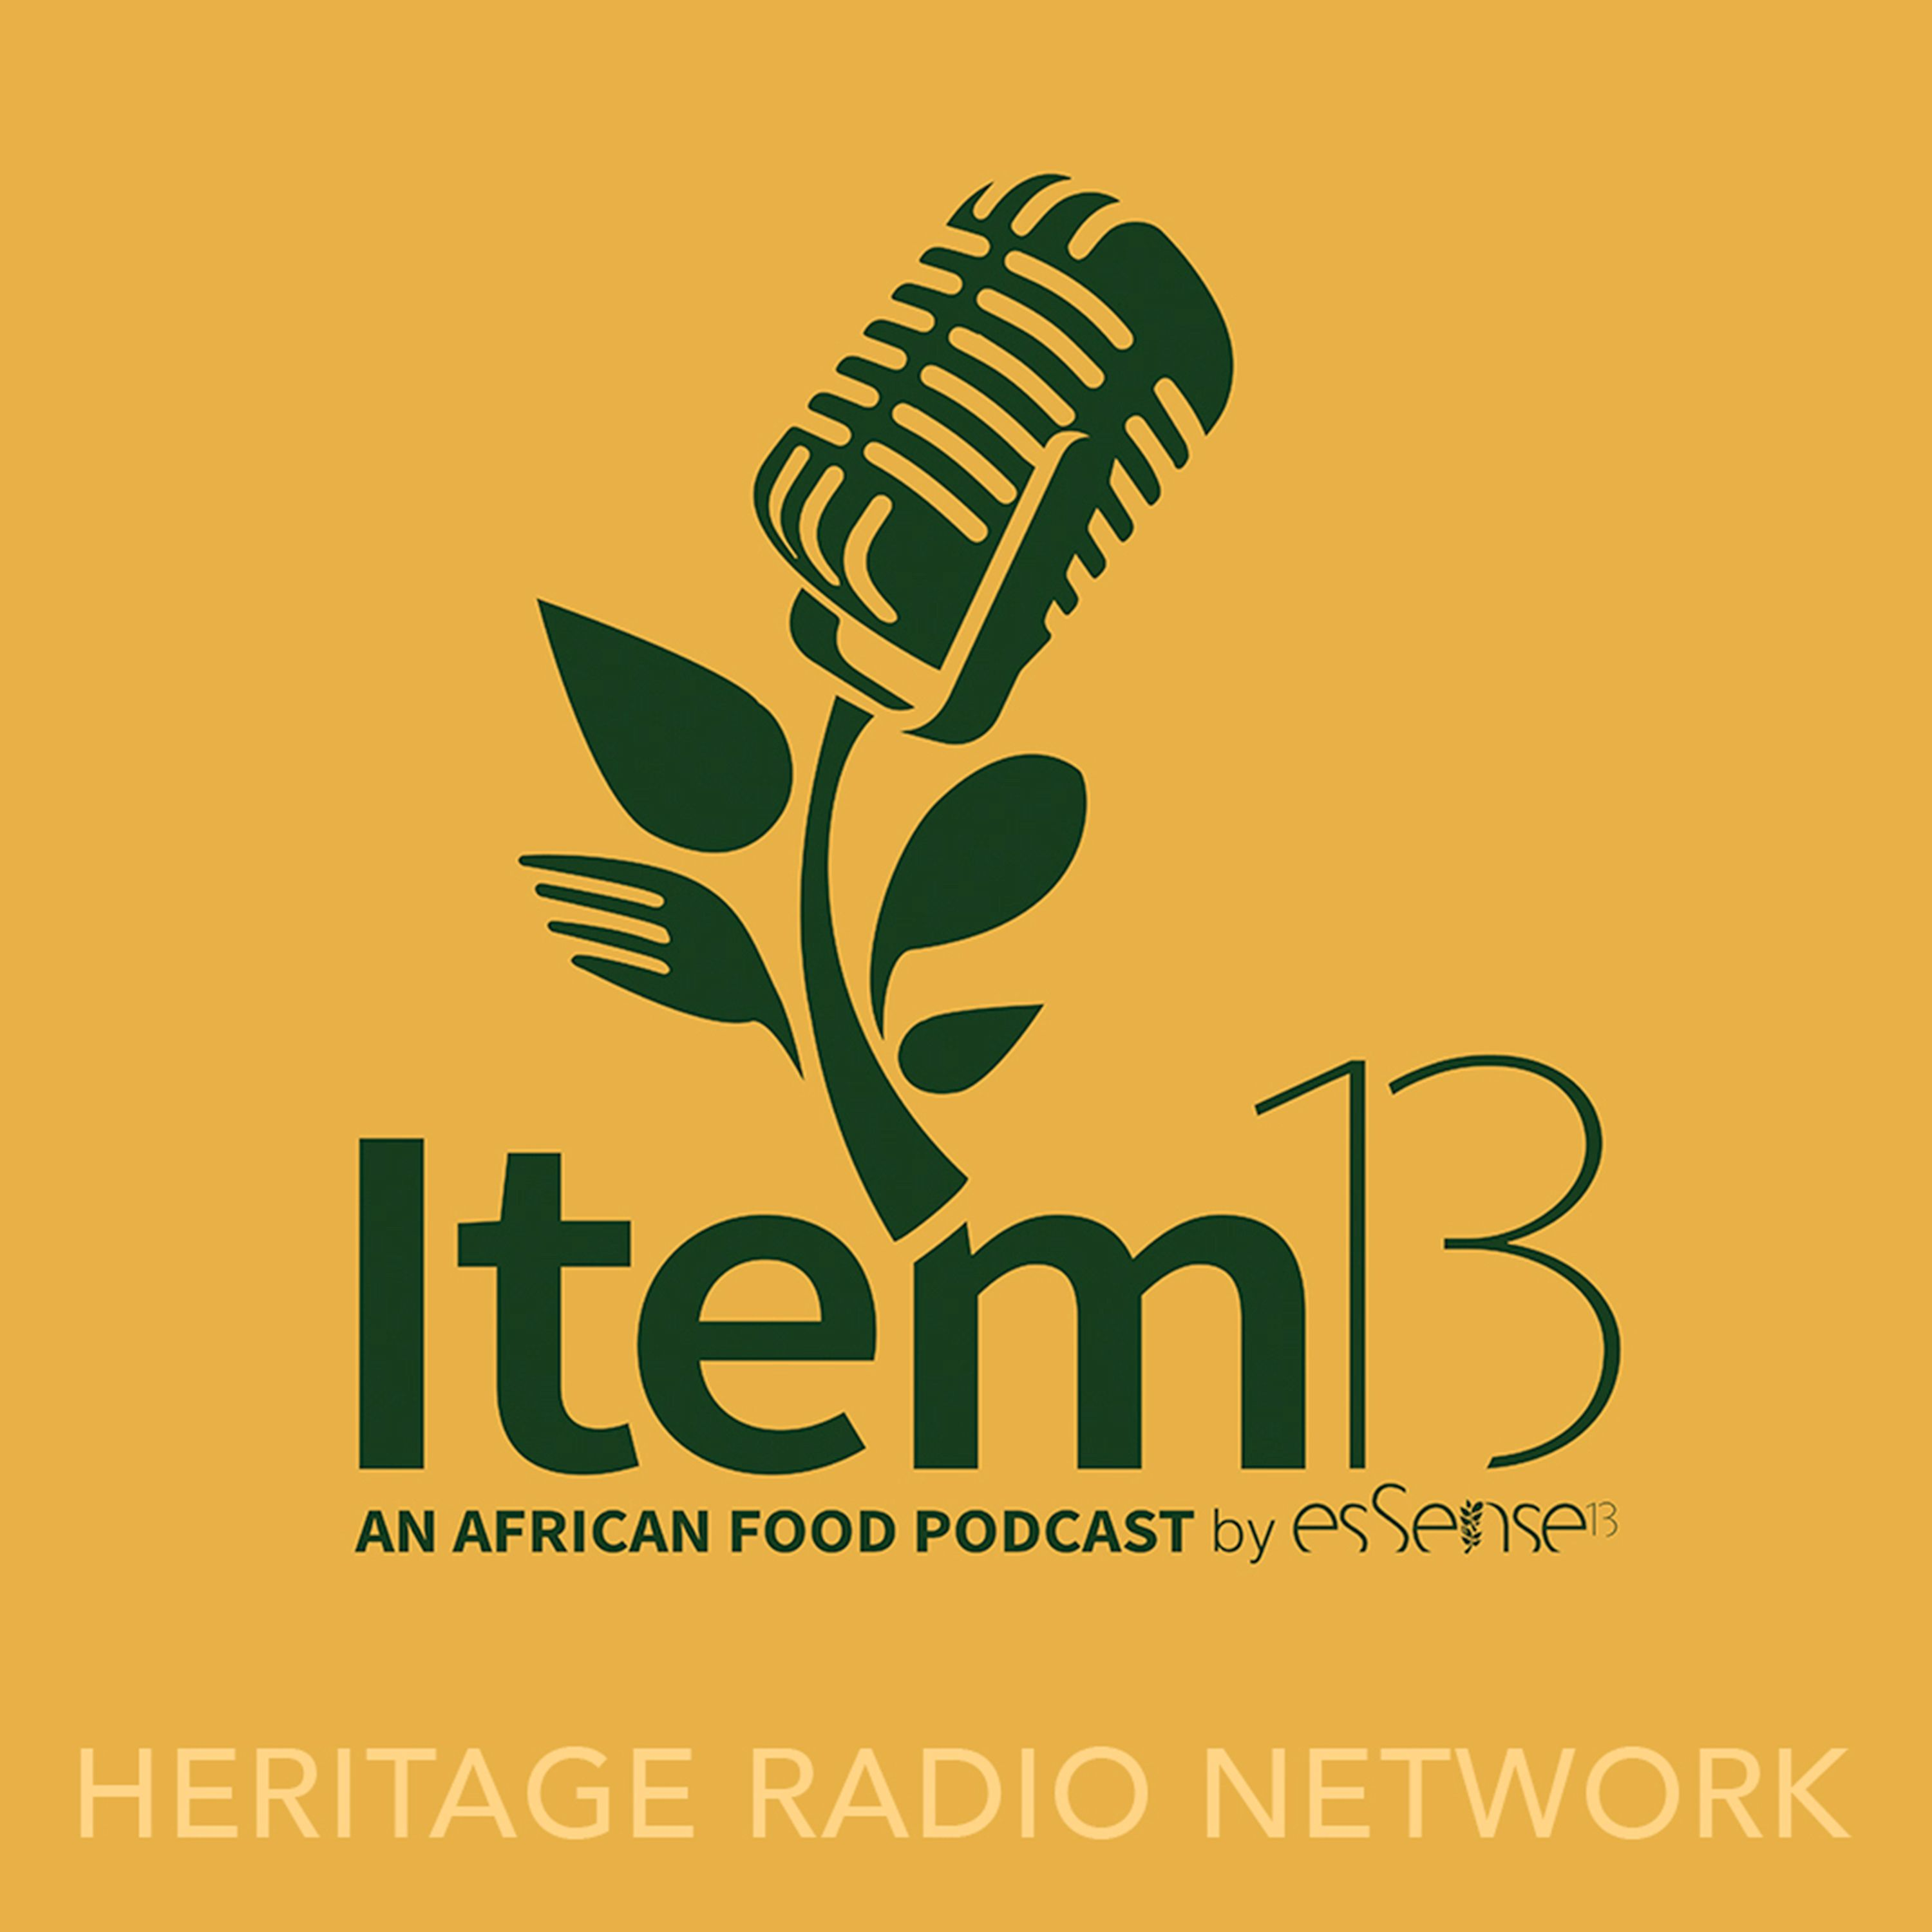 SATURDAY SHOUT OUT: Item 13 An African Food Podcast